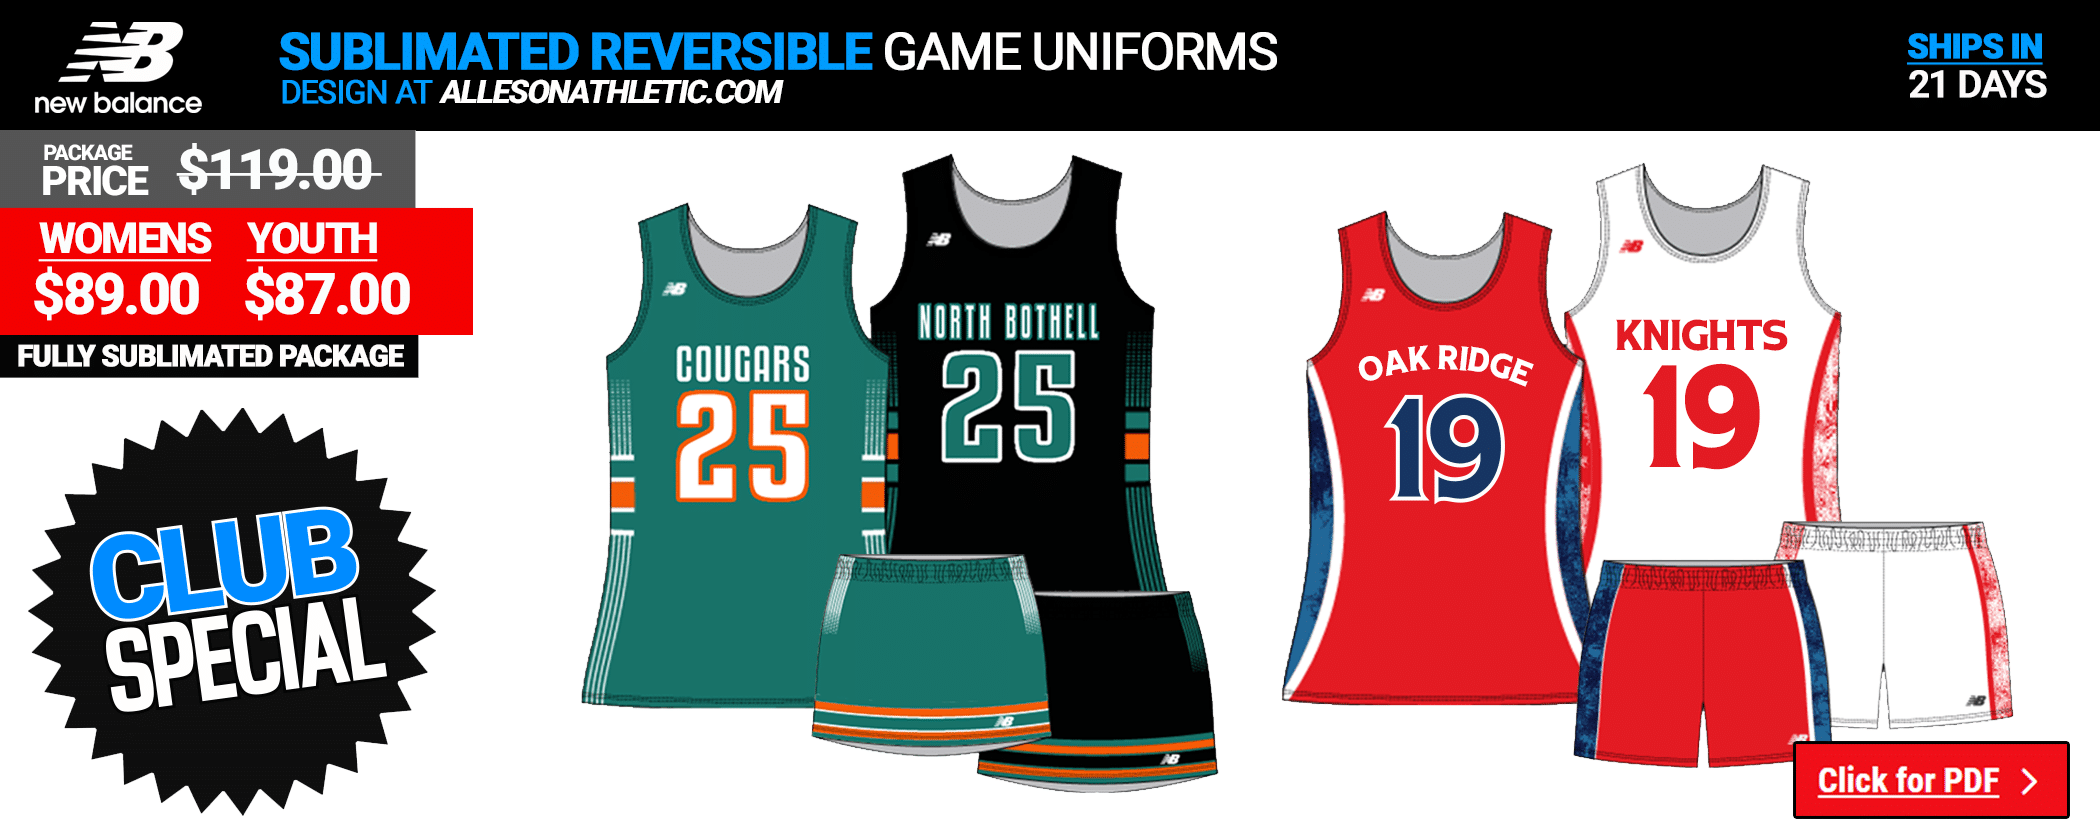 New Balance Sublimated Ladies Reversible Game Uniform Package